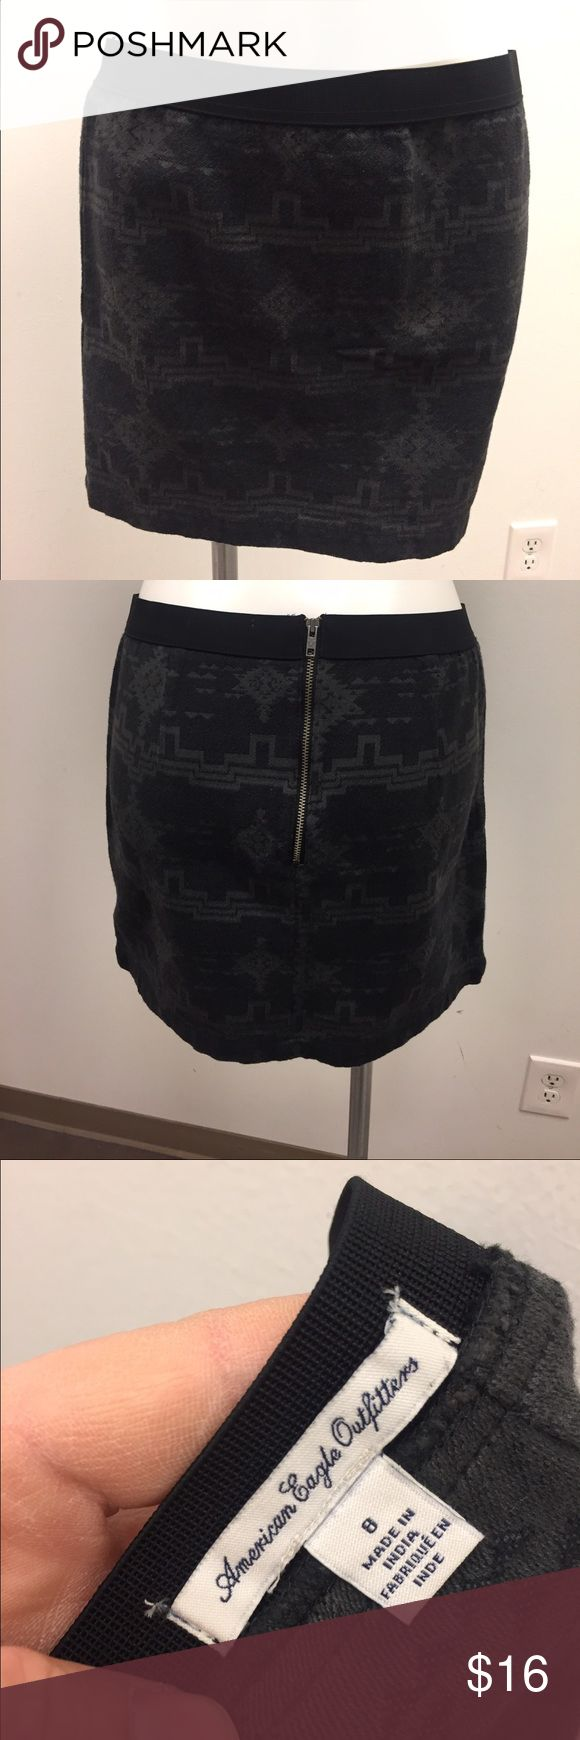 American Eagle Outfitters Tribal Print Skirt Grey and black tribal print mini skirt from American Eagle size 8. No major flaws or damage. It zips up the back and has some stretch to it. #americaneagle #ae #tribal #skirt #americaneagleoutfitters American Eagle Outfitters Skirts Mini